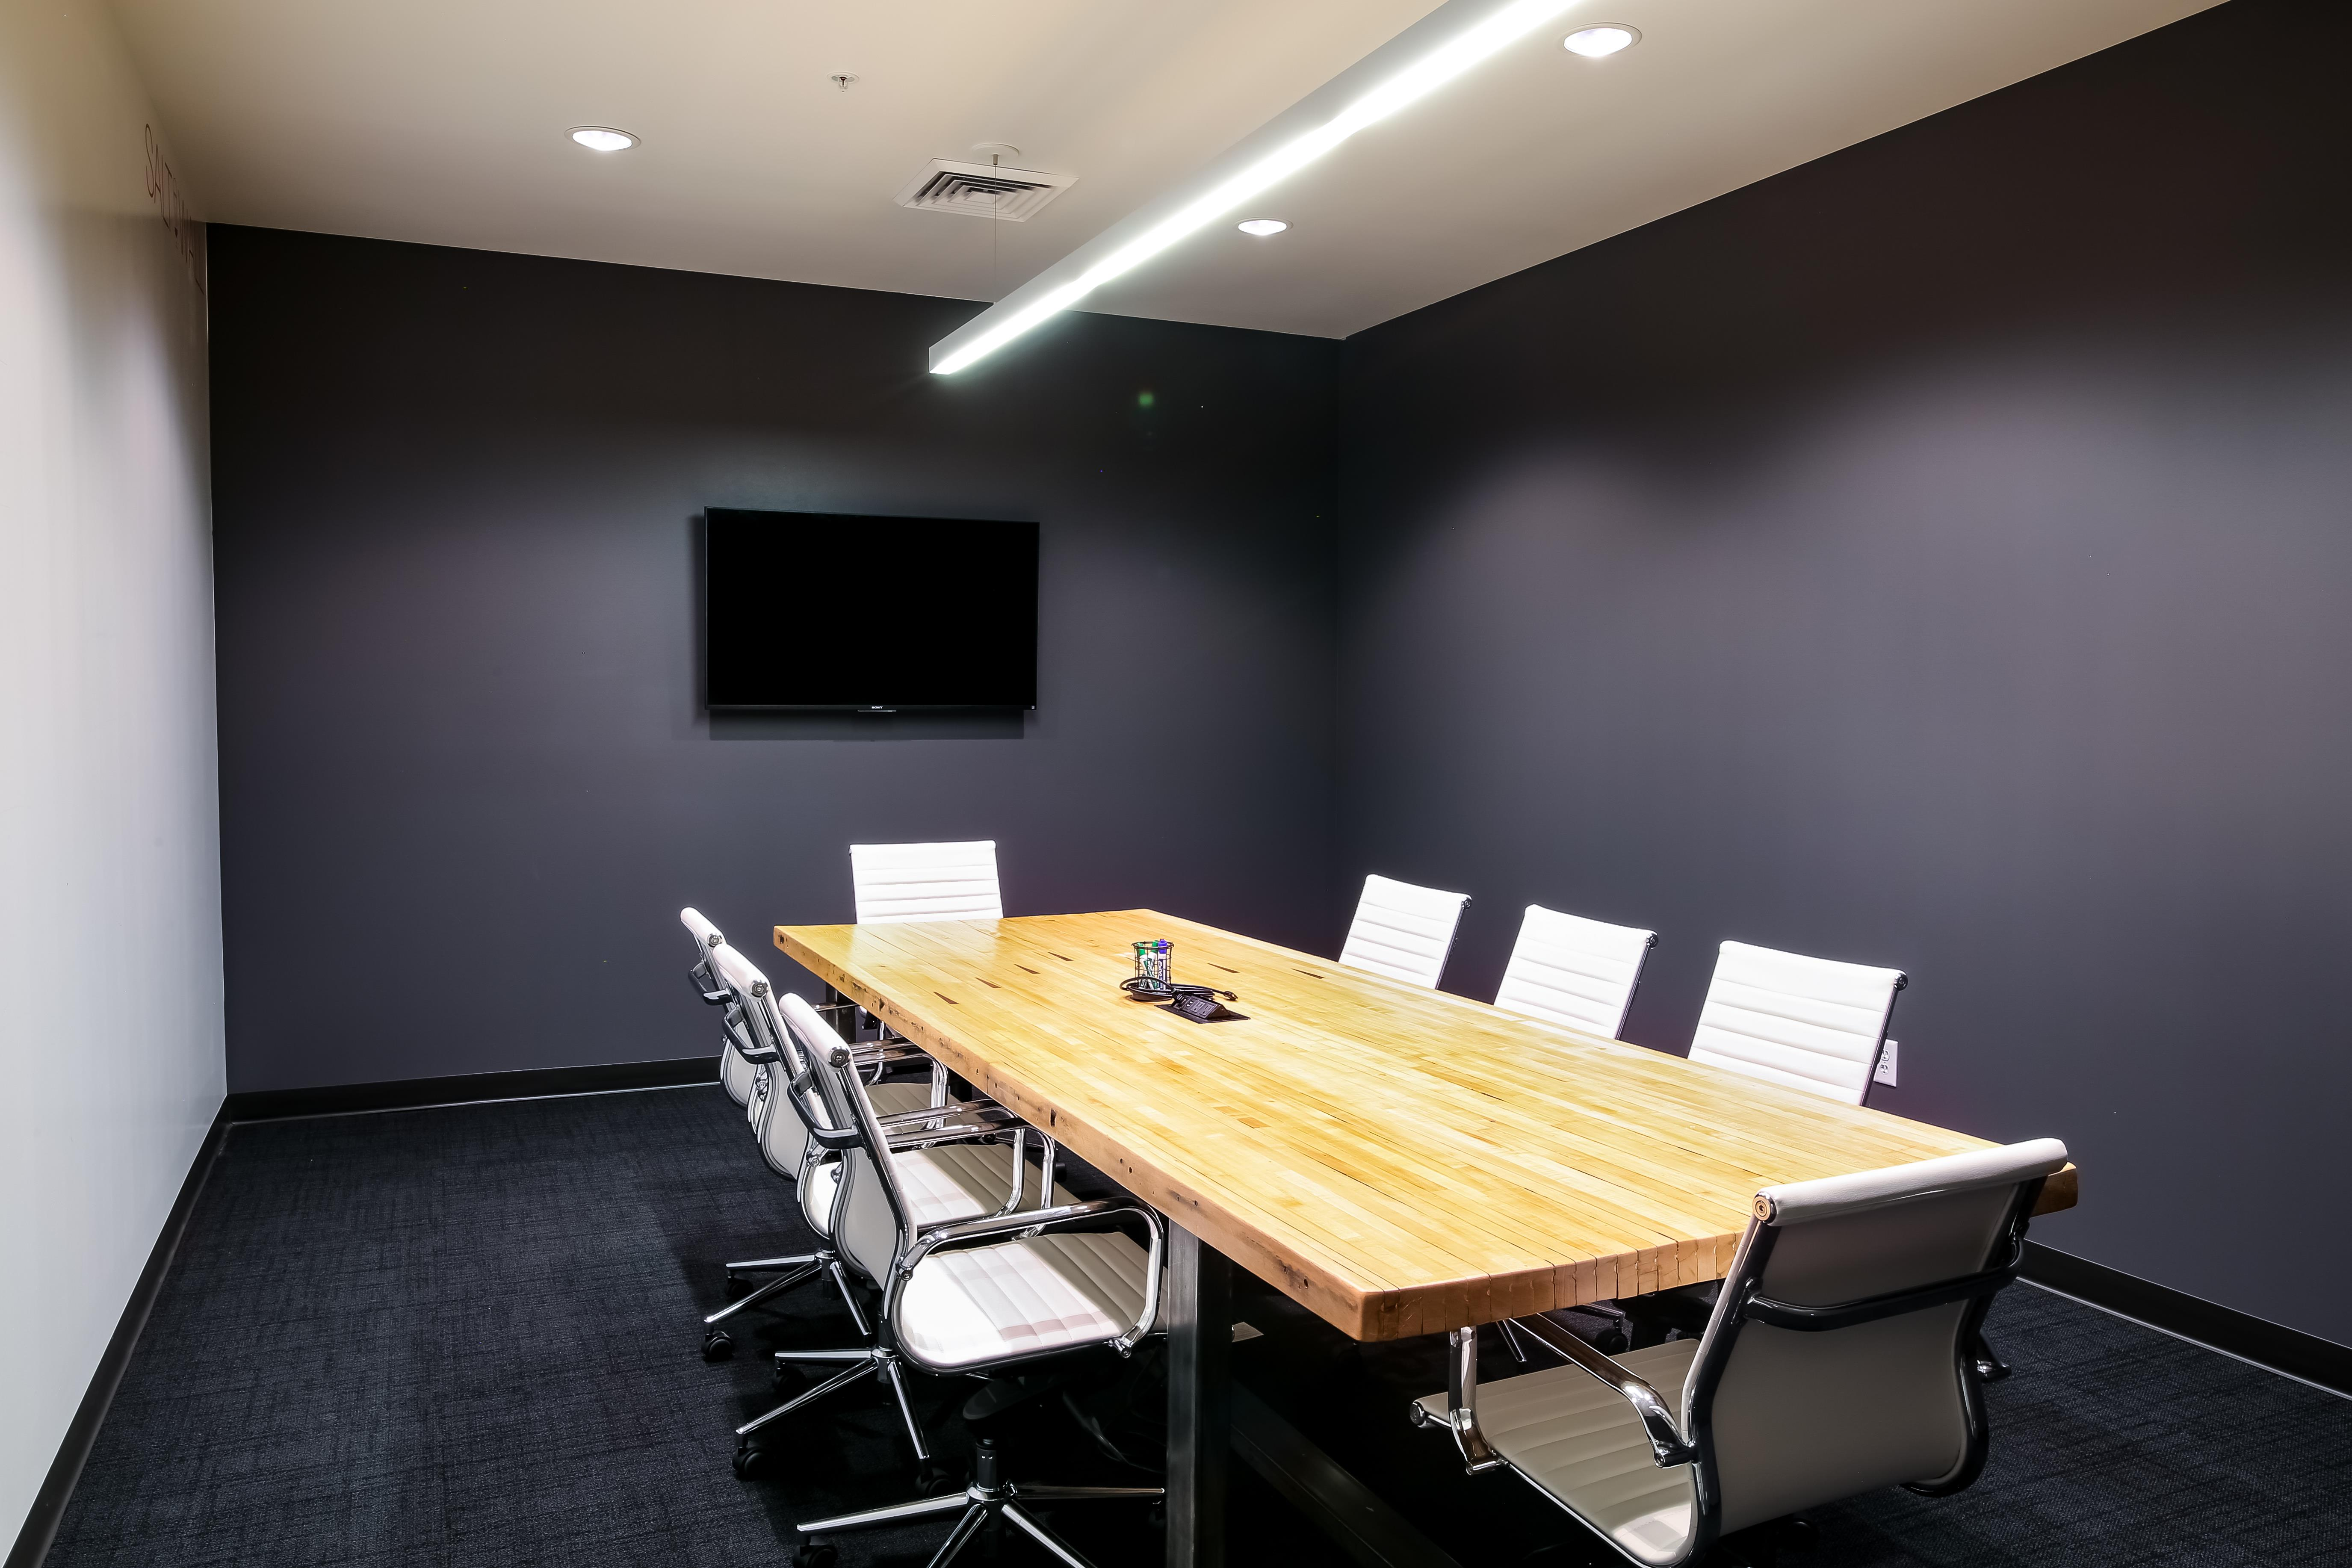 Salt Mine Productive Coworking Space - The Alley